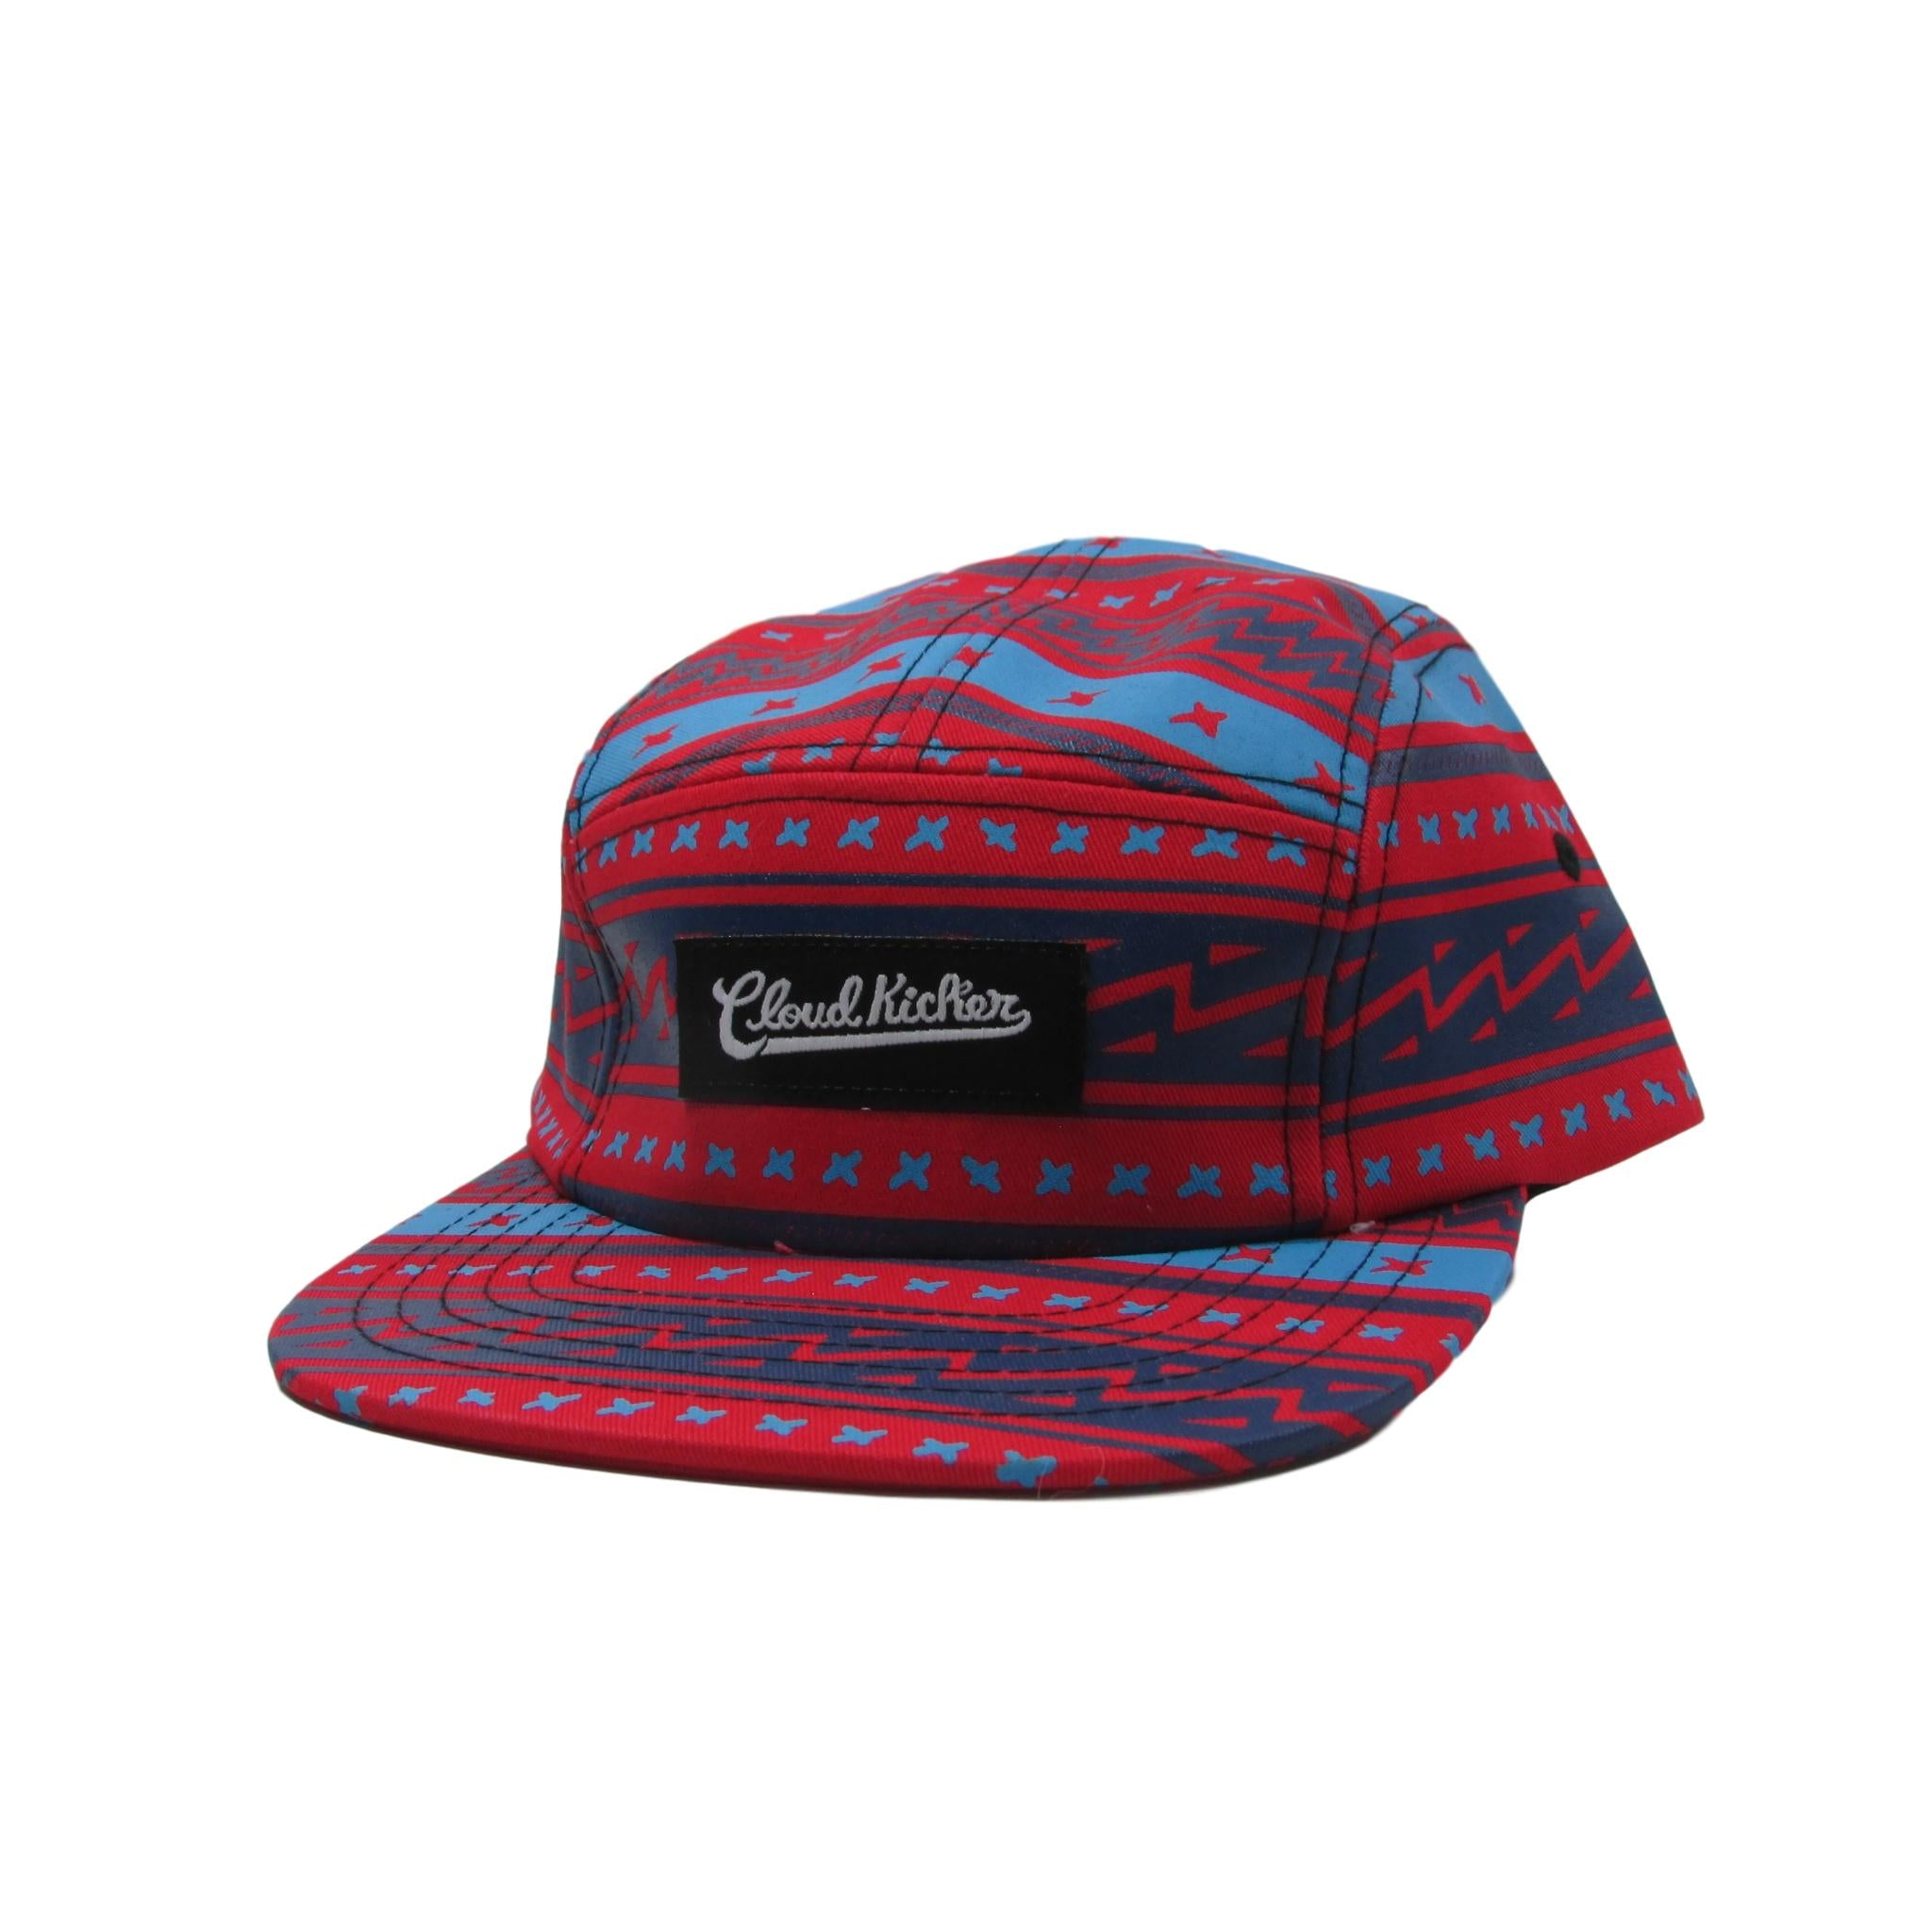 Cloud Kicker America the Great Font Strapback Hat 5 Panel